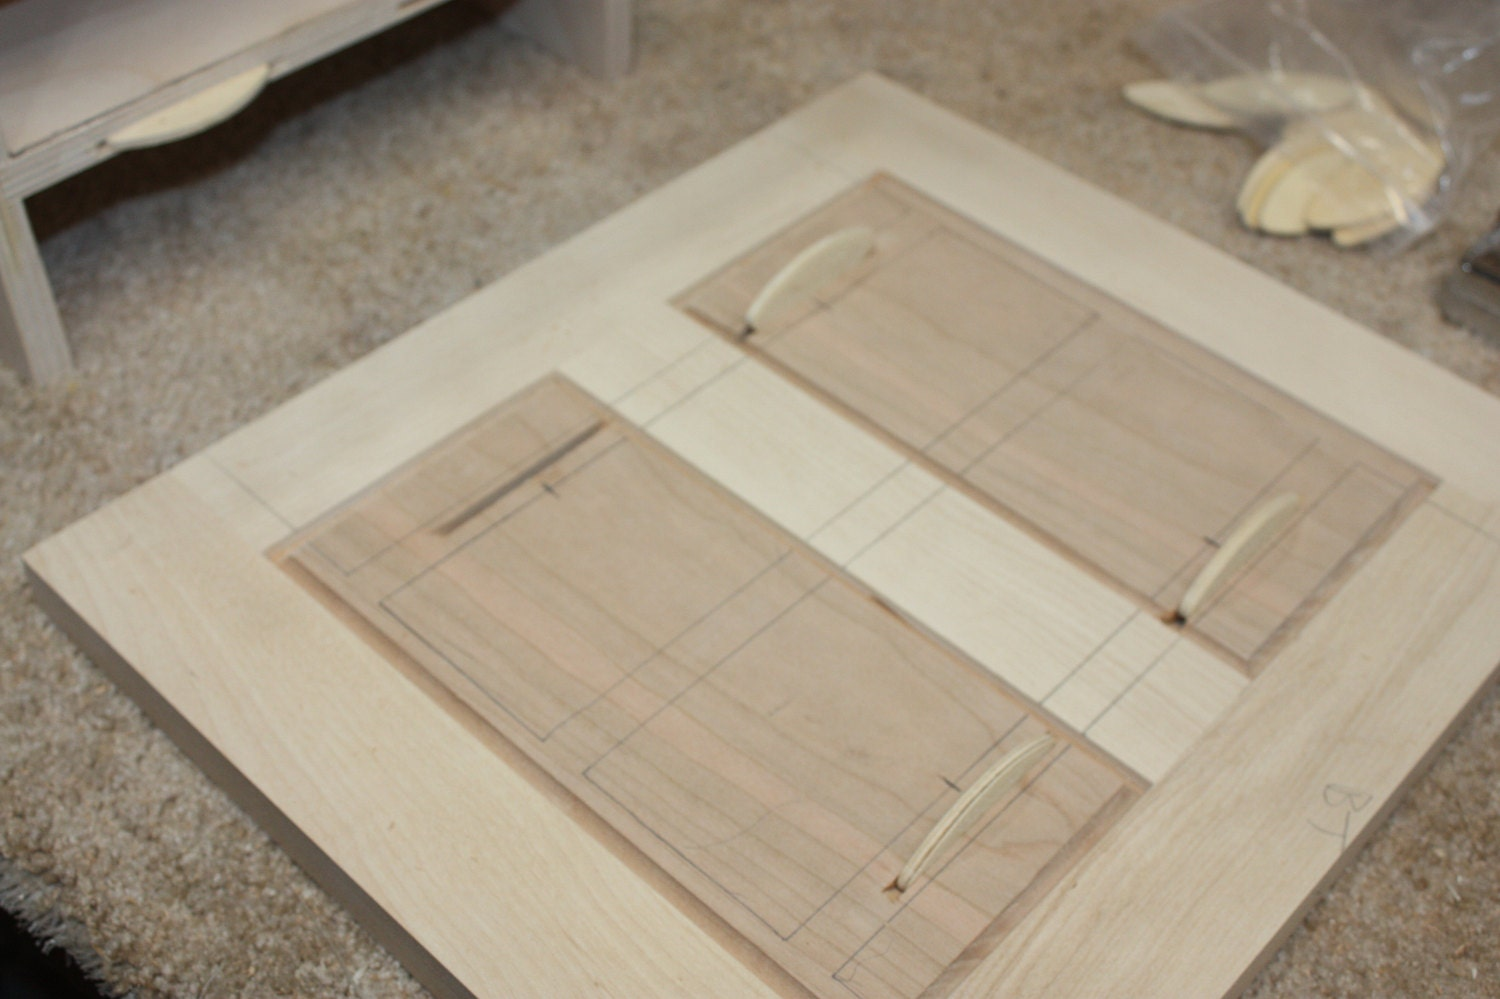 Making a Large Jewelry Box with Raised Panels